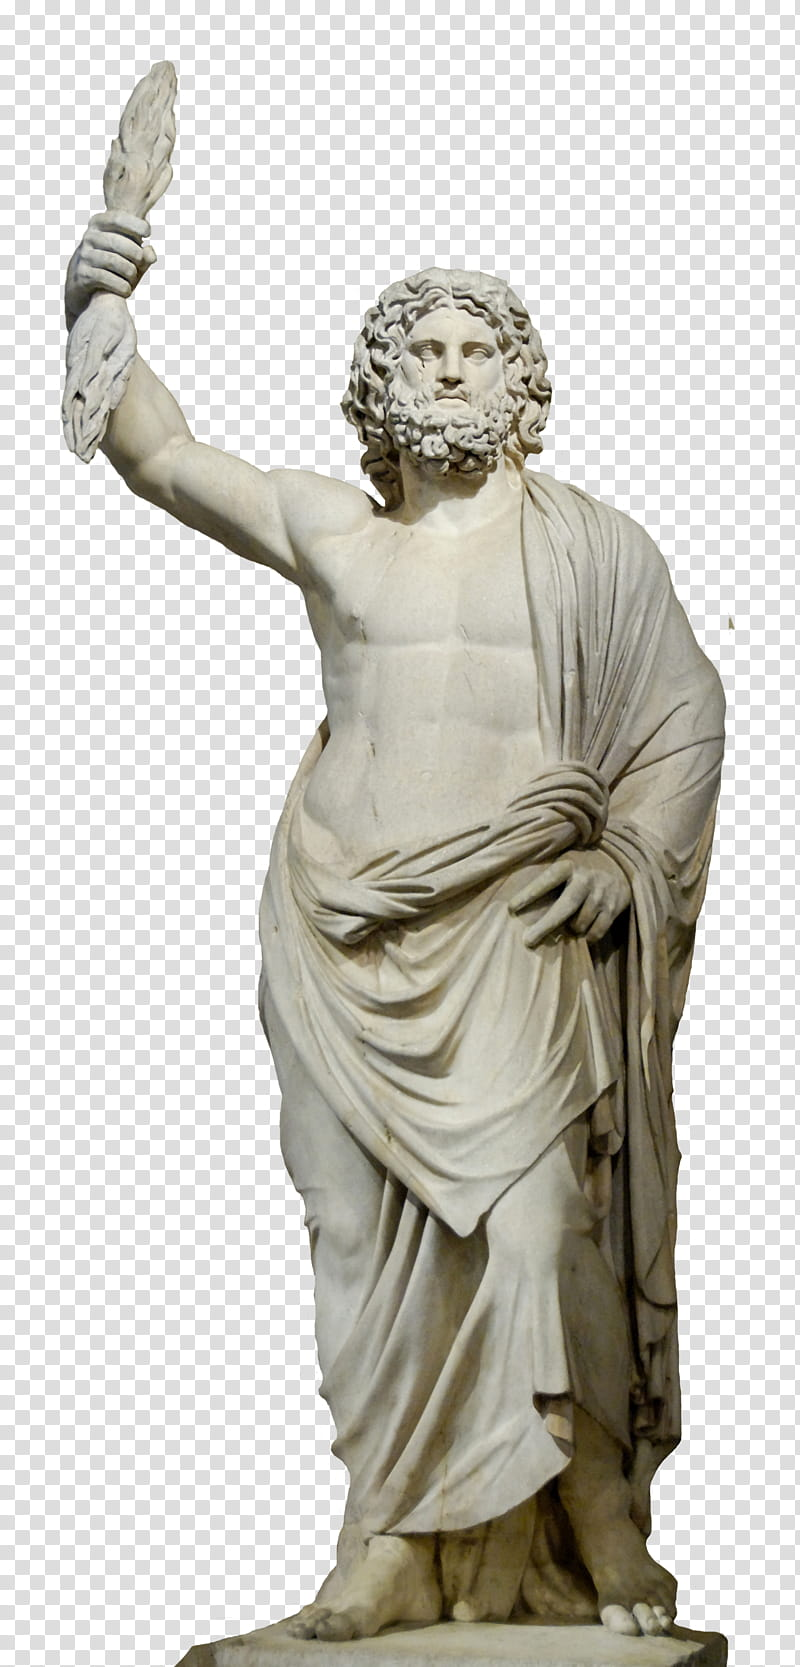 royalty free download Gray man transparent background. Zeus clipart zeus statue